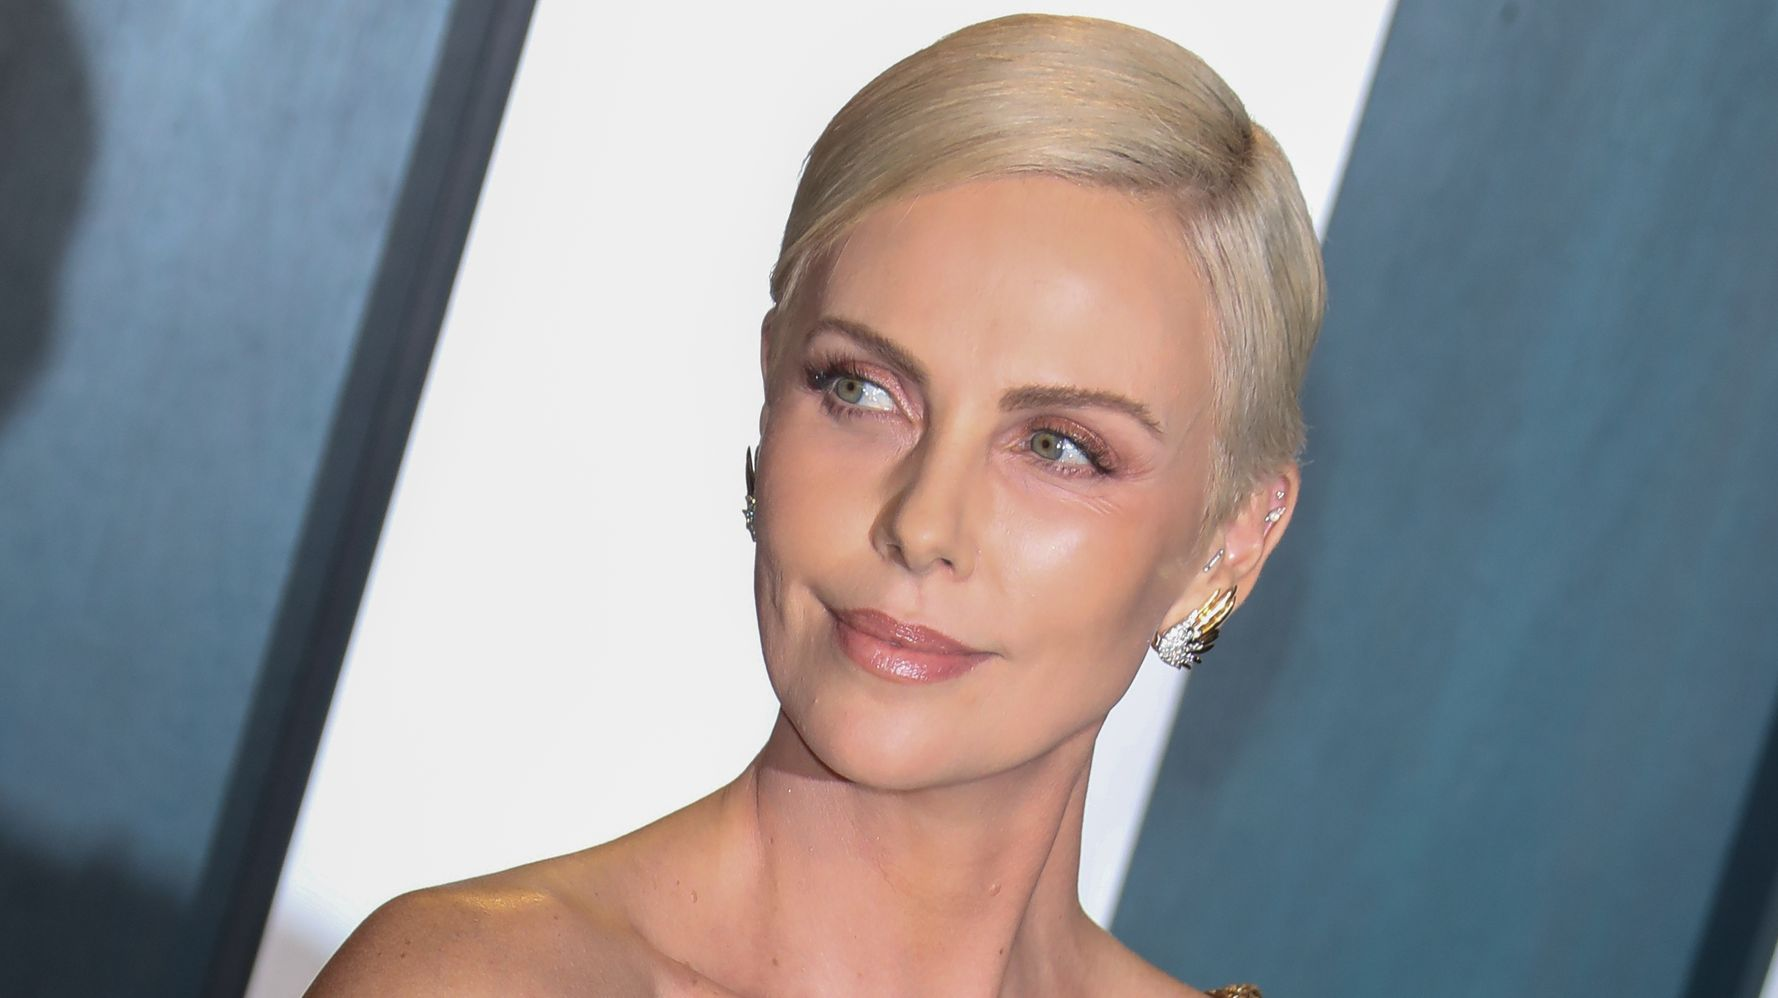 www.huffpost.com: Charlize Theron Is Down To Star In Lesbian 'Die Hard' Reboot: 'Sign Me On'